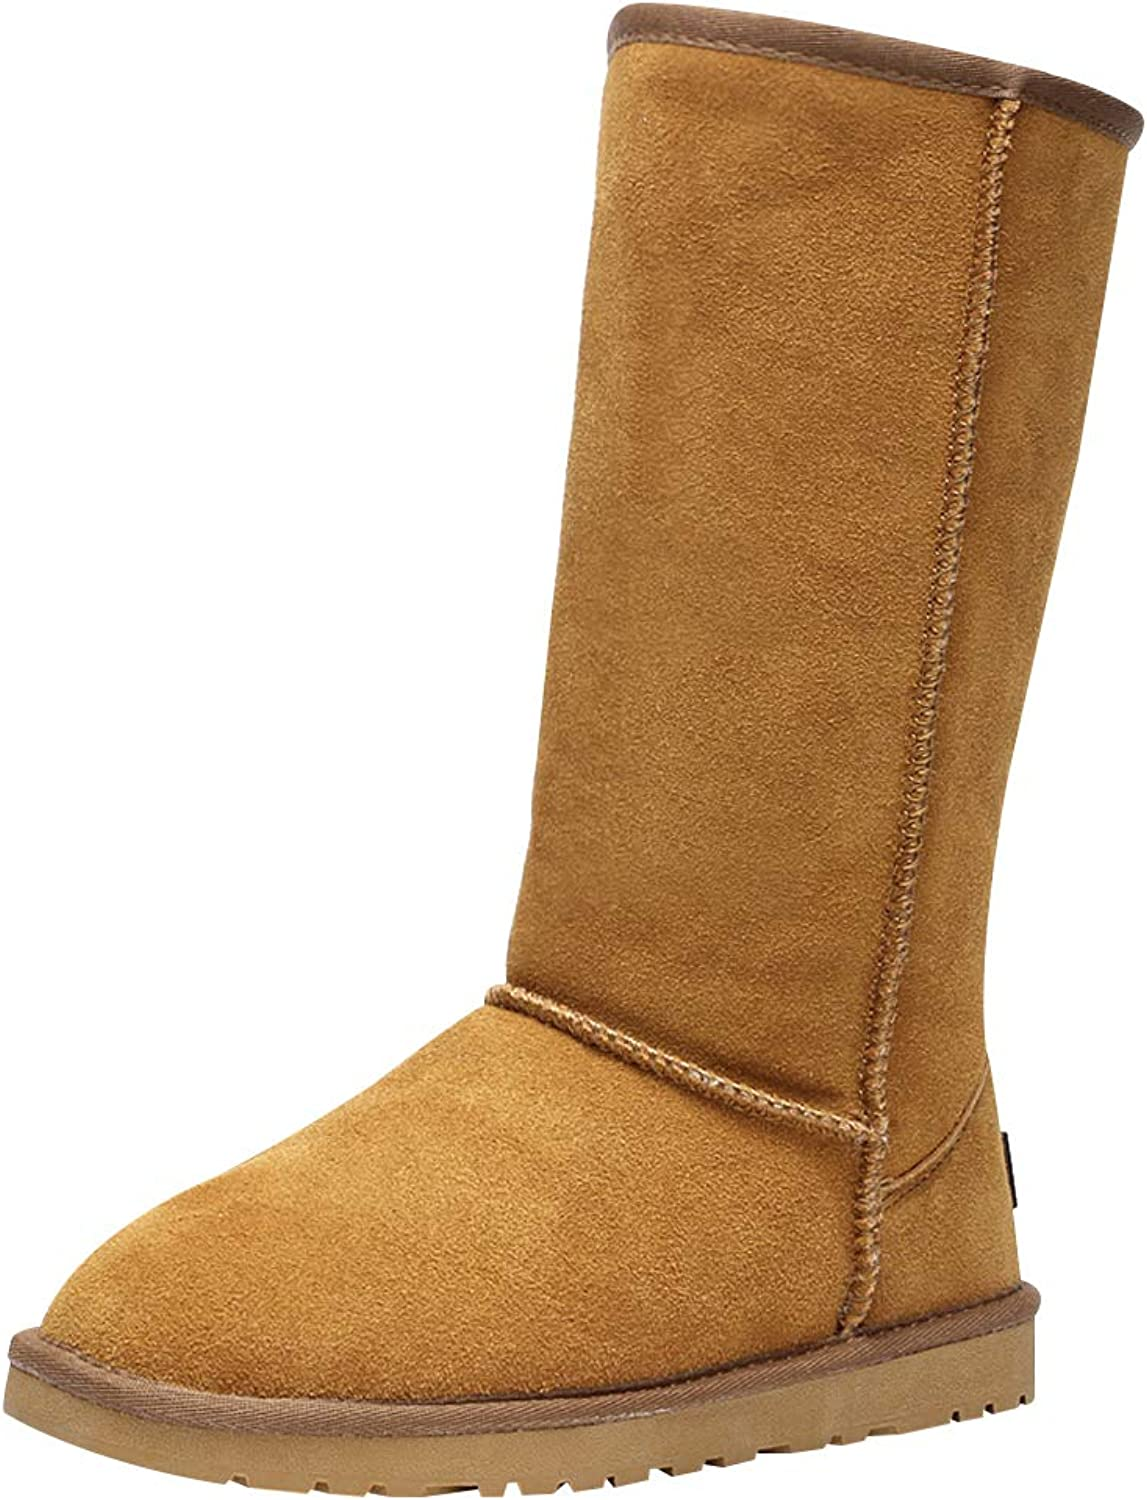 Rismart Womens Classic Below Knee Thermal Suede Half Snow Boots Thick Faux Fur Lined Winter Boots